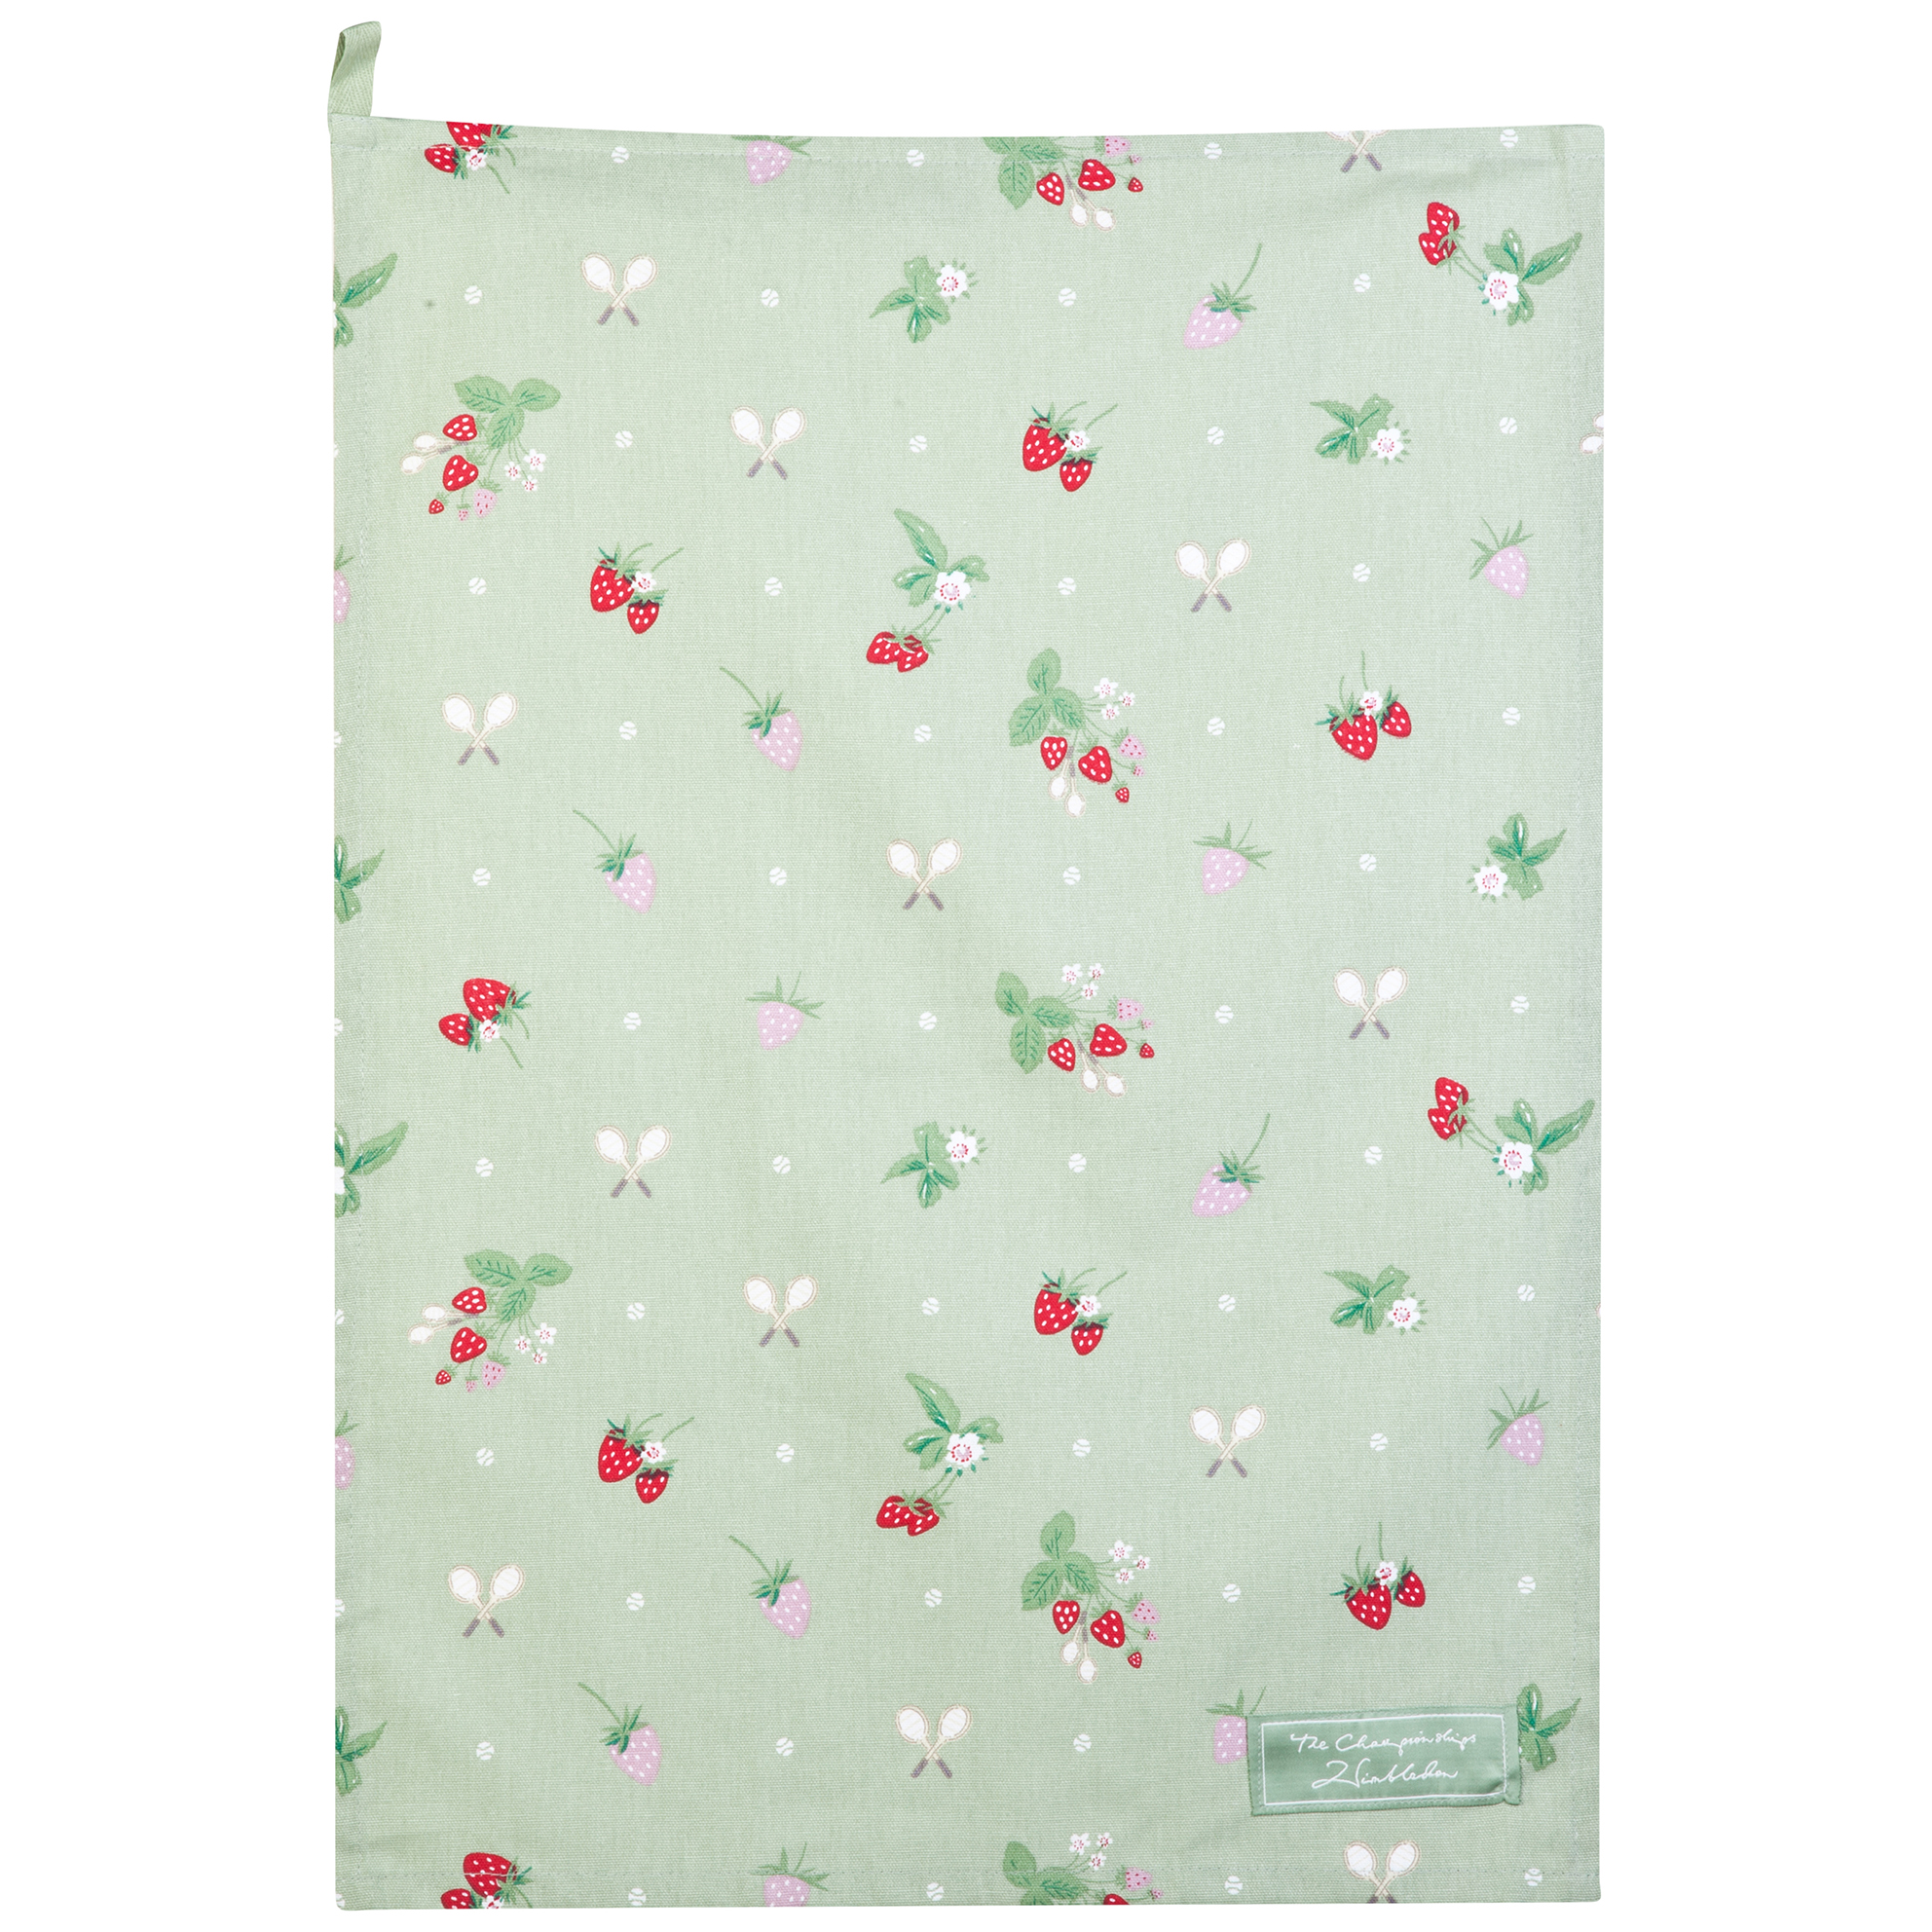 Wimbledon Tea Towel With Strawberries Design - Green